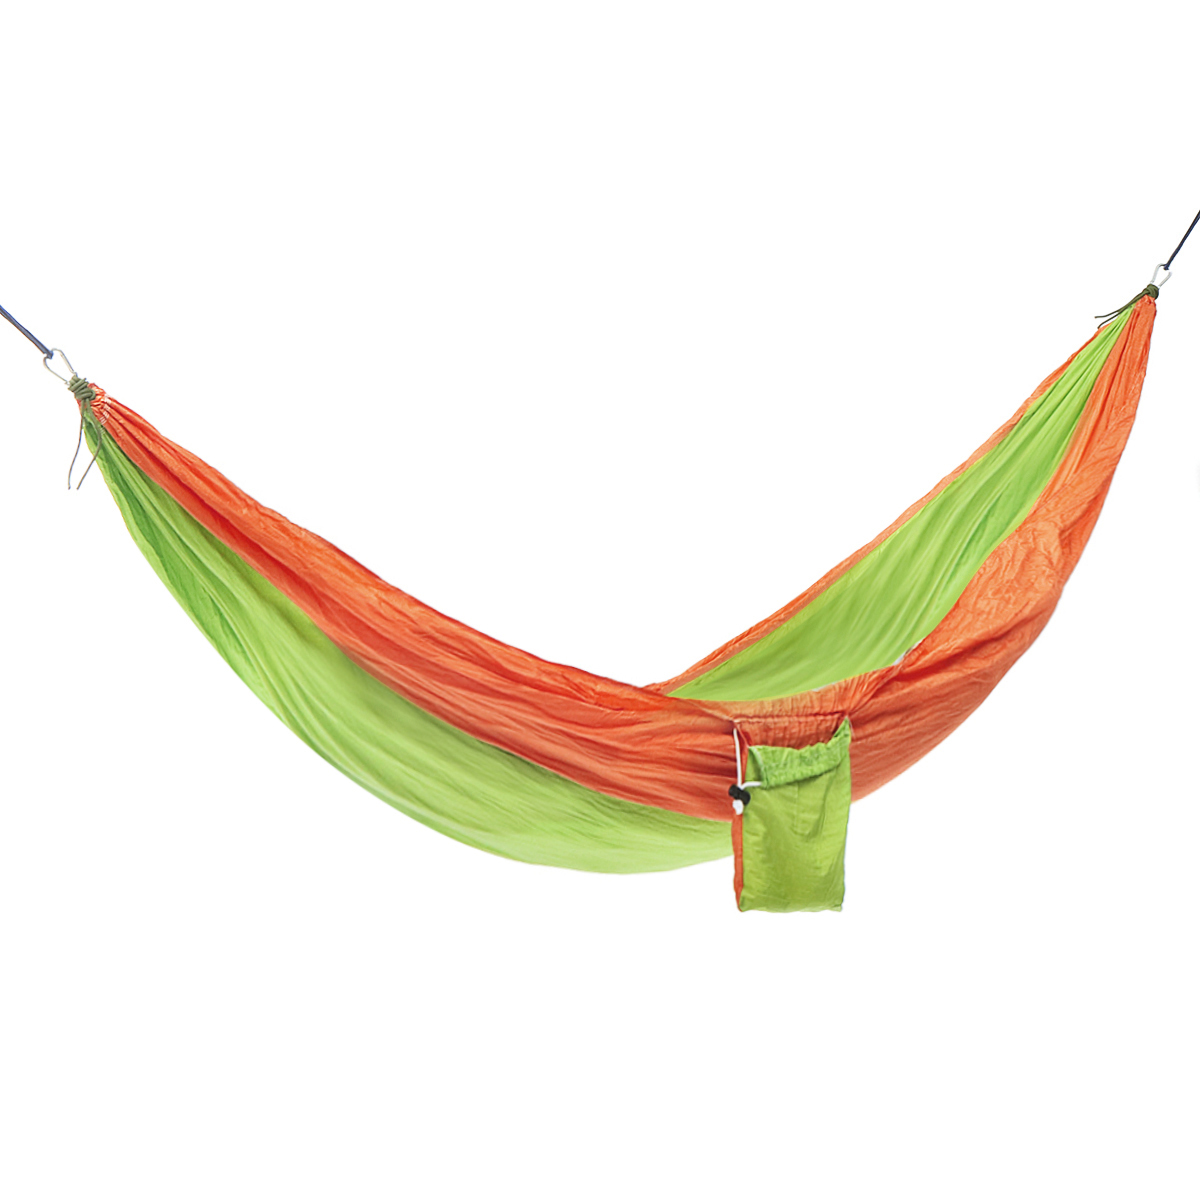 Double Camping Parachute Hammocks With 2 Straps 2 Carabin Survival Garden Outdoor Furniture Leisure Sleeping Bed Travel Hammocks